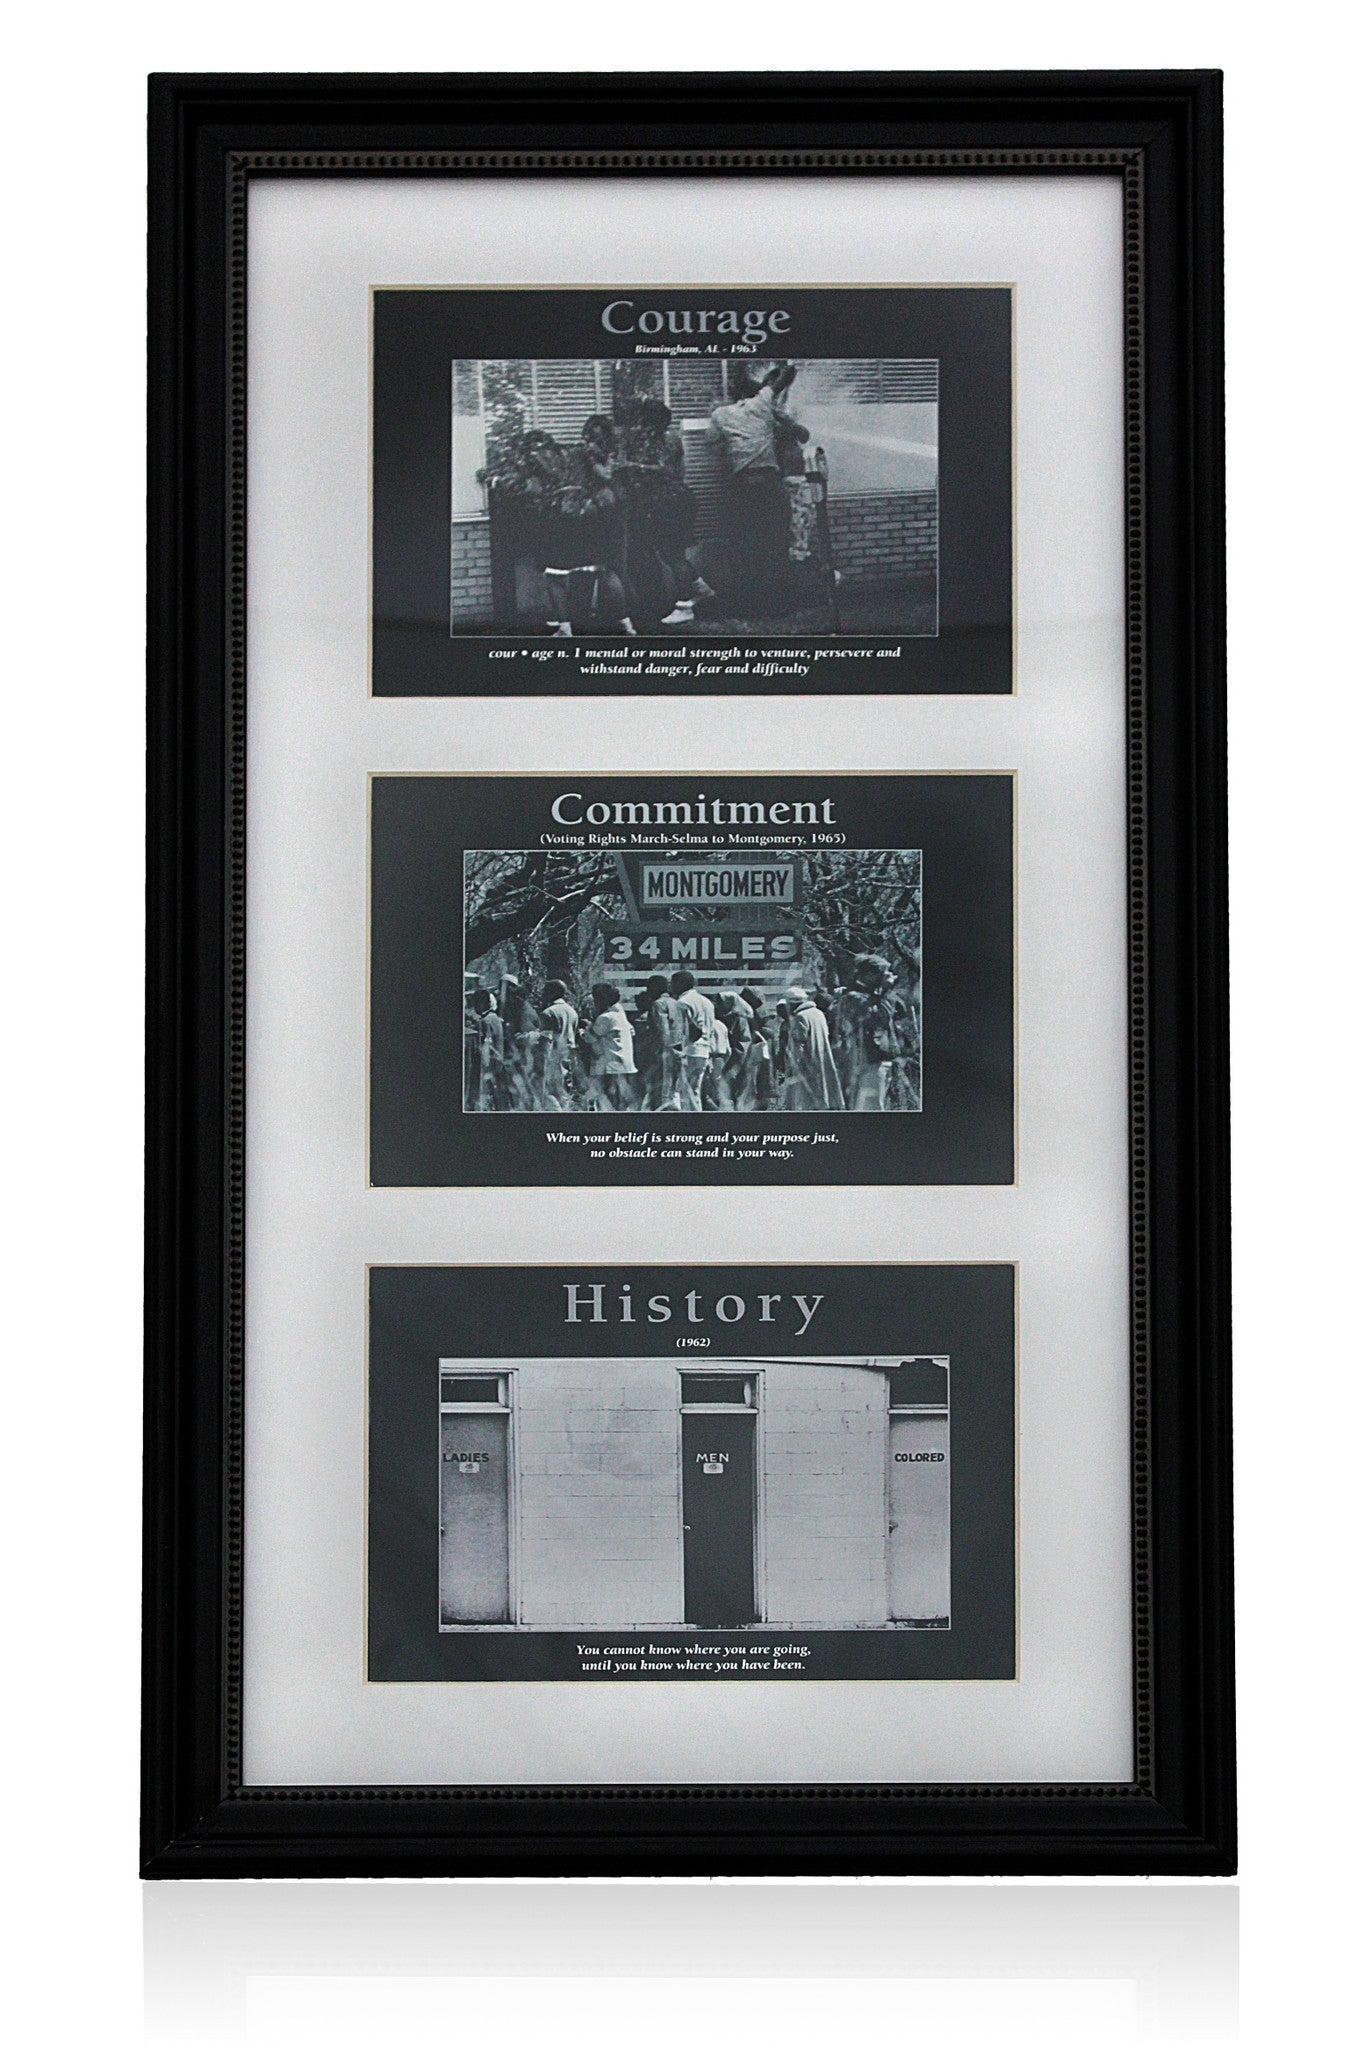 Courage, Commitment and History by D'azi Productions (Black Frame)